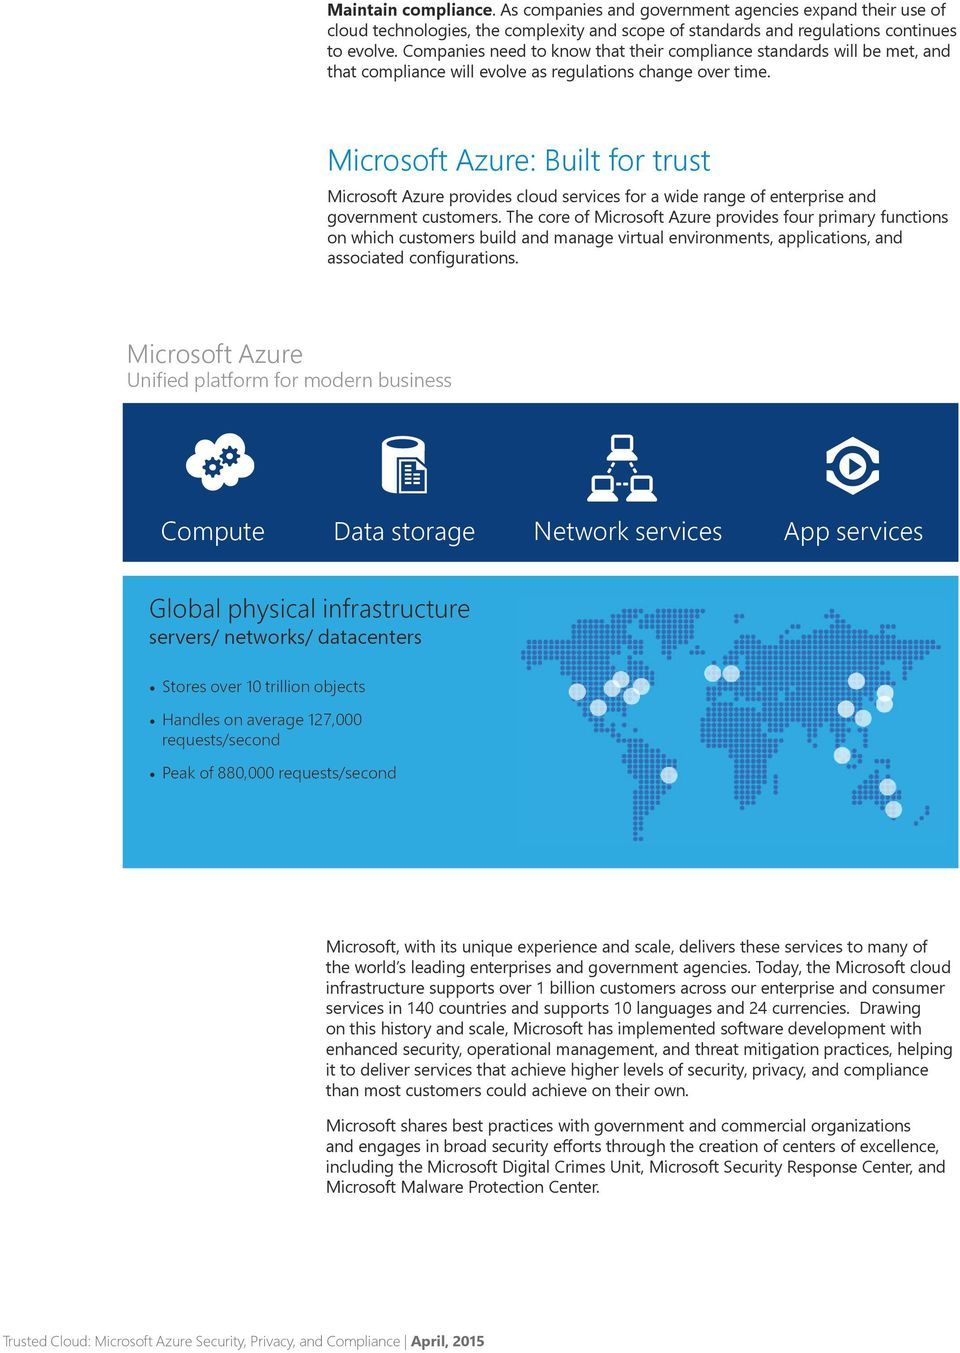 Microsoft Azure: Built for trust Microsoft Azure provides cloud services for a wide range of enterprise and government customers.